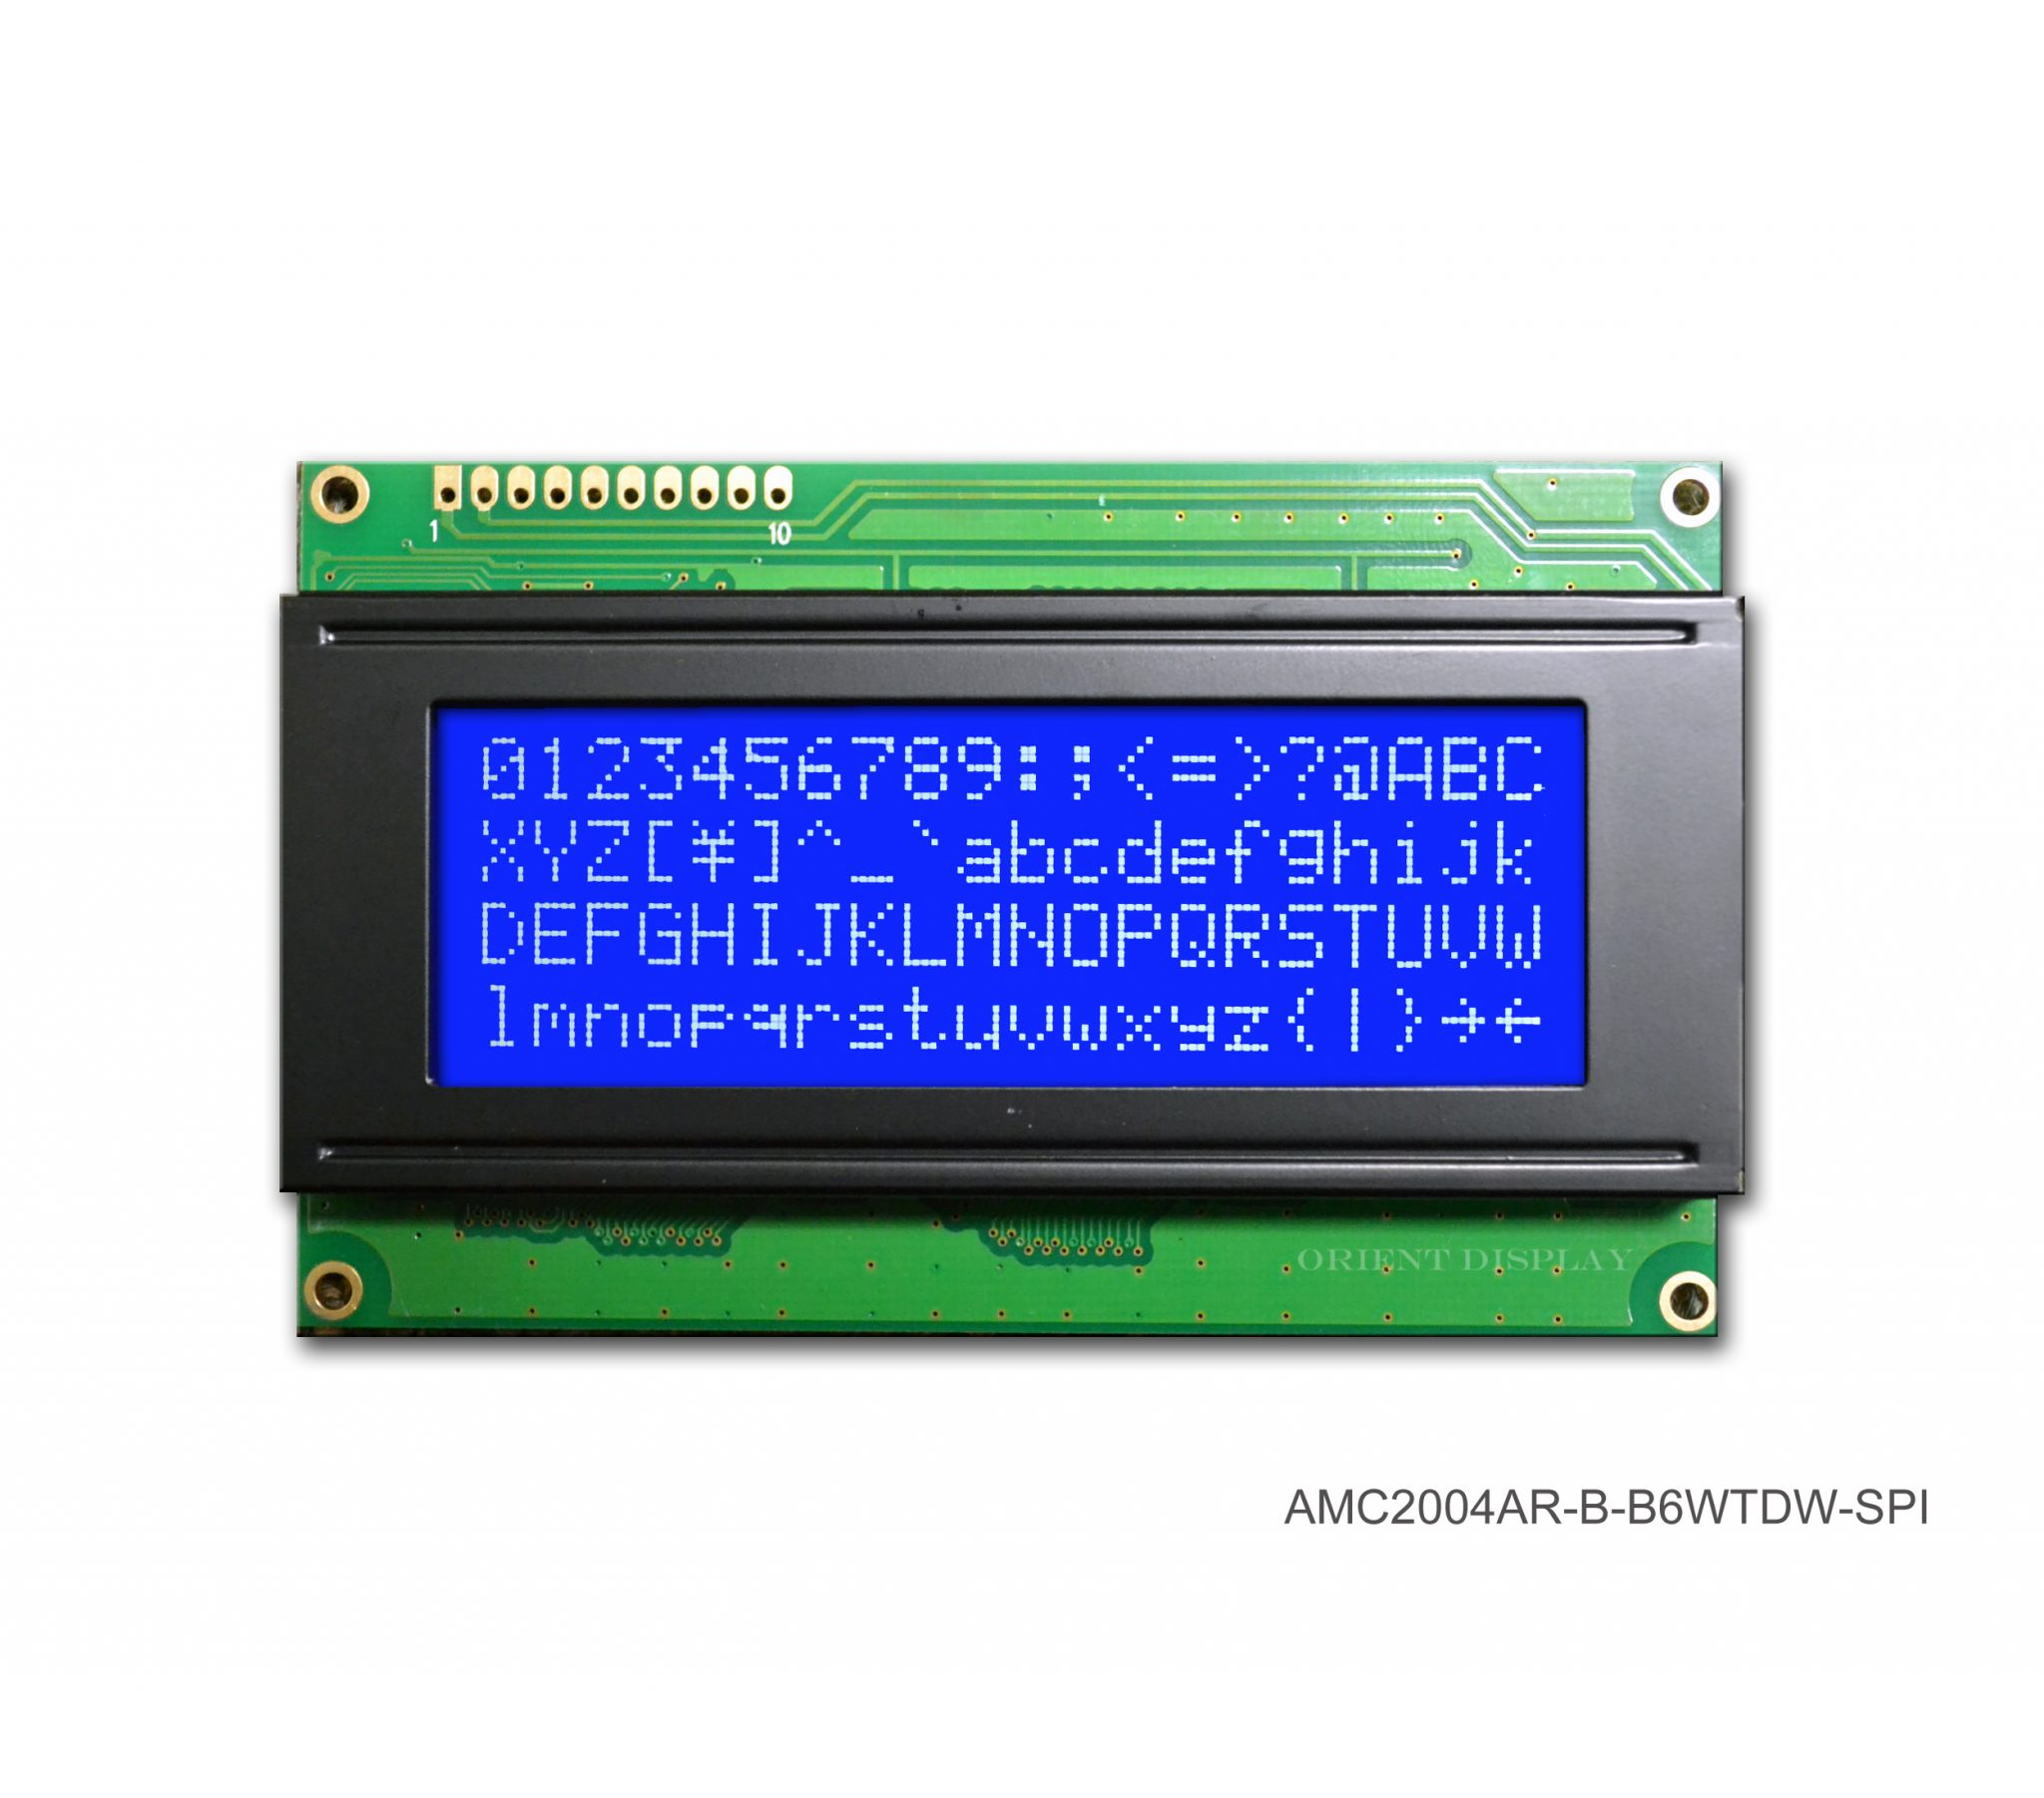 AMC2004AR-B-B6WTDW-SPI (20x4 Character LCD Module - SPI Interface)